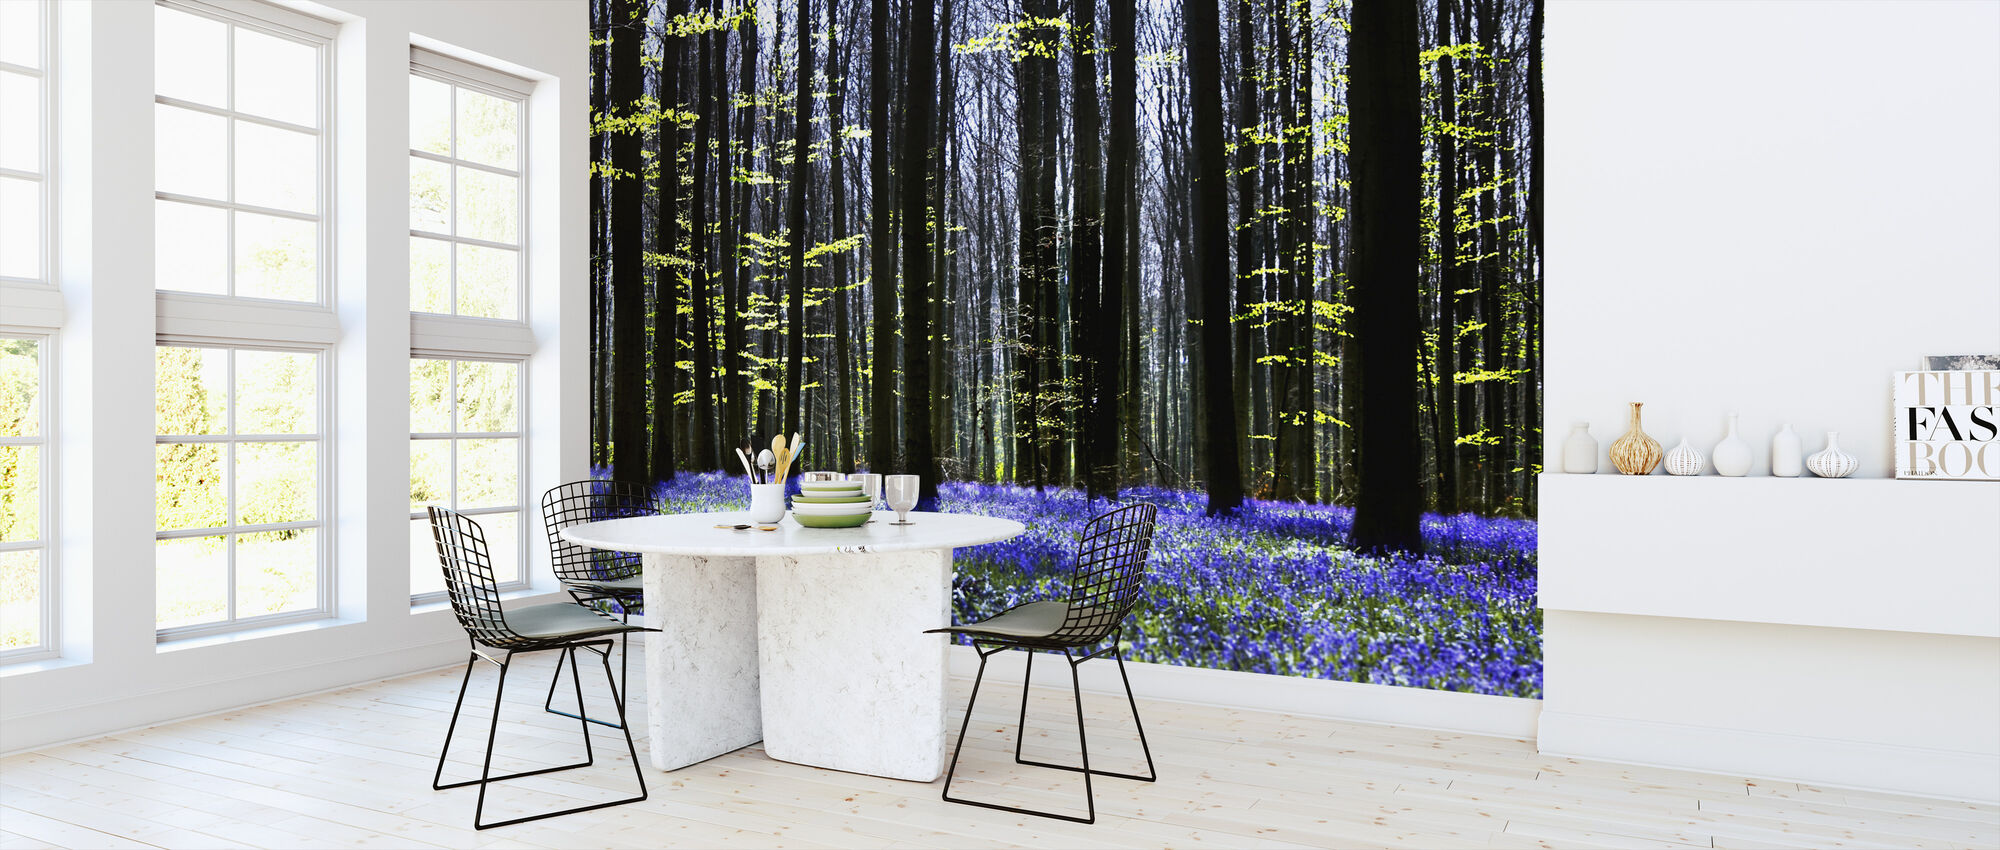 Dark Tree and Bluebells - Wallpaper - Kitchen